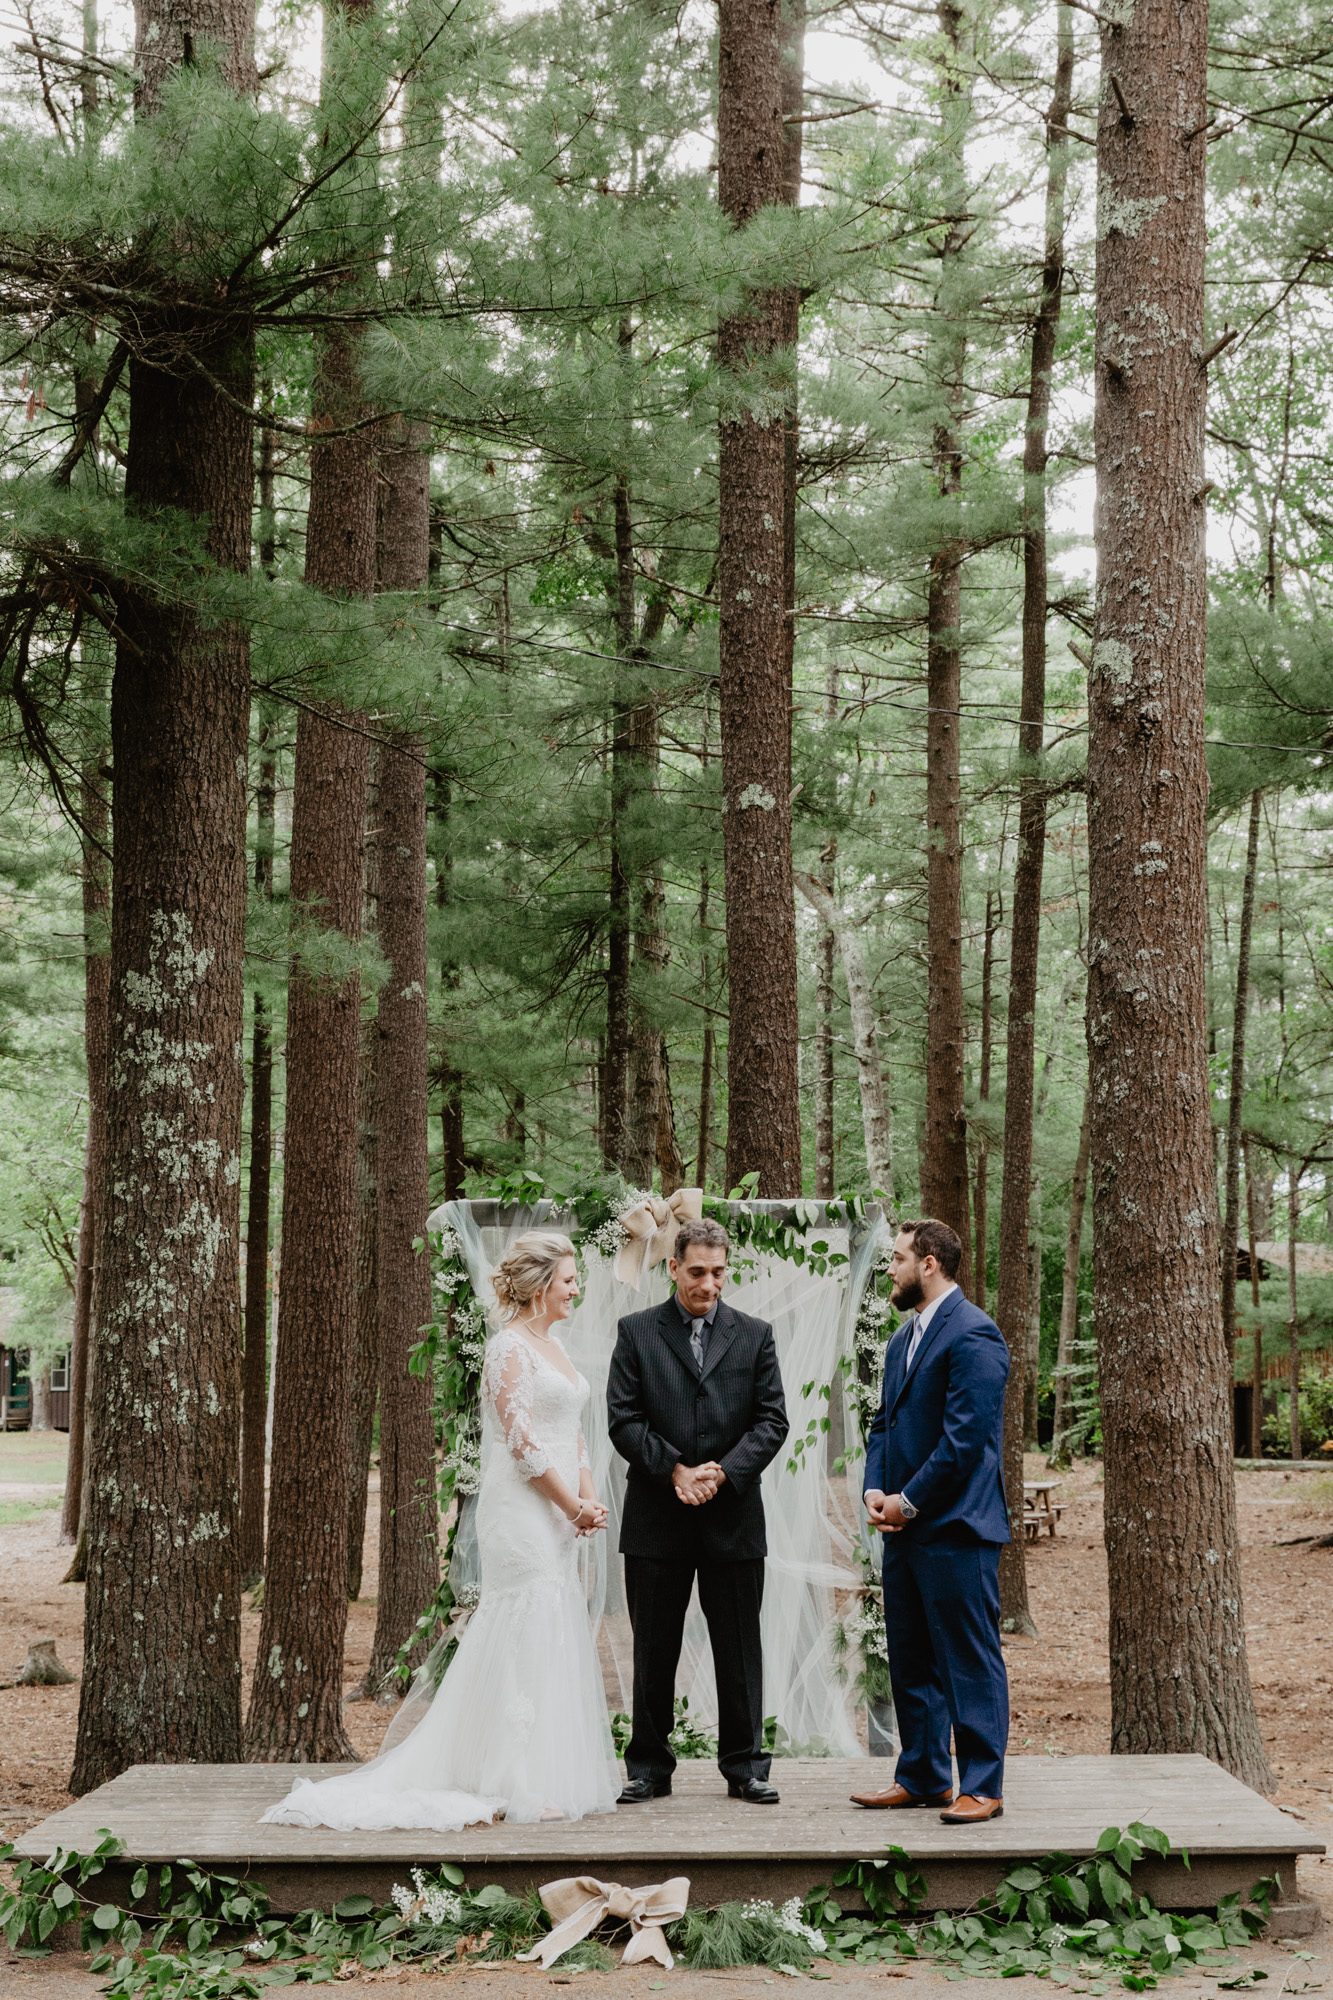 The couple says their vows at their wedding in the woods